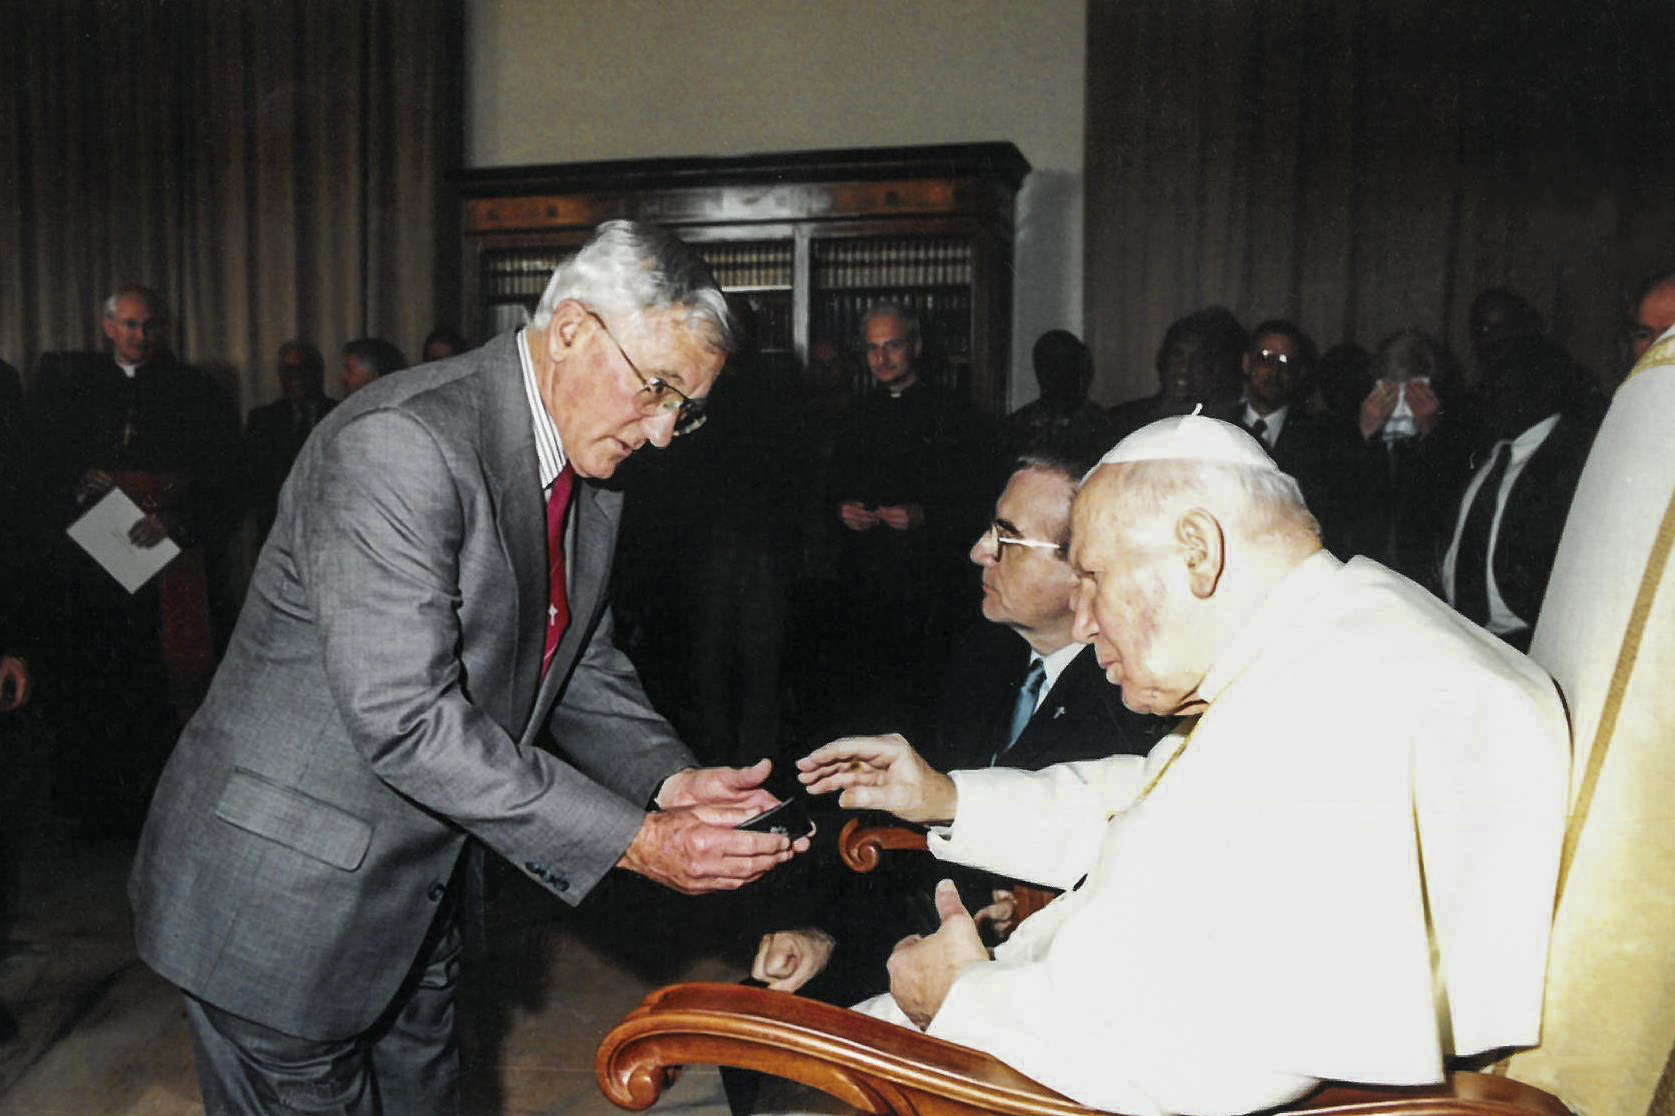 Br Gerry at an audience with the Pope John Paul II, in Rome. Photo: Supplied.